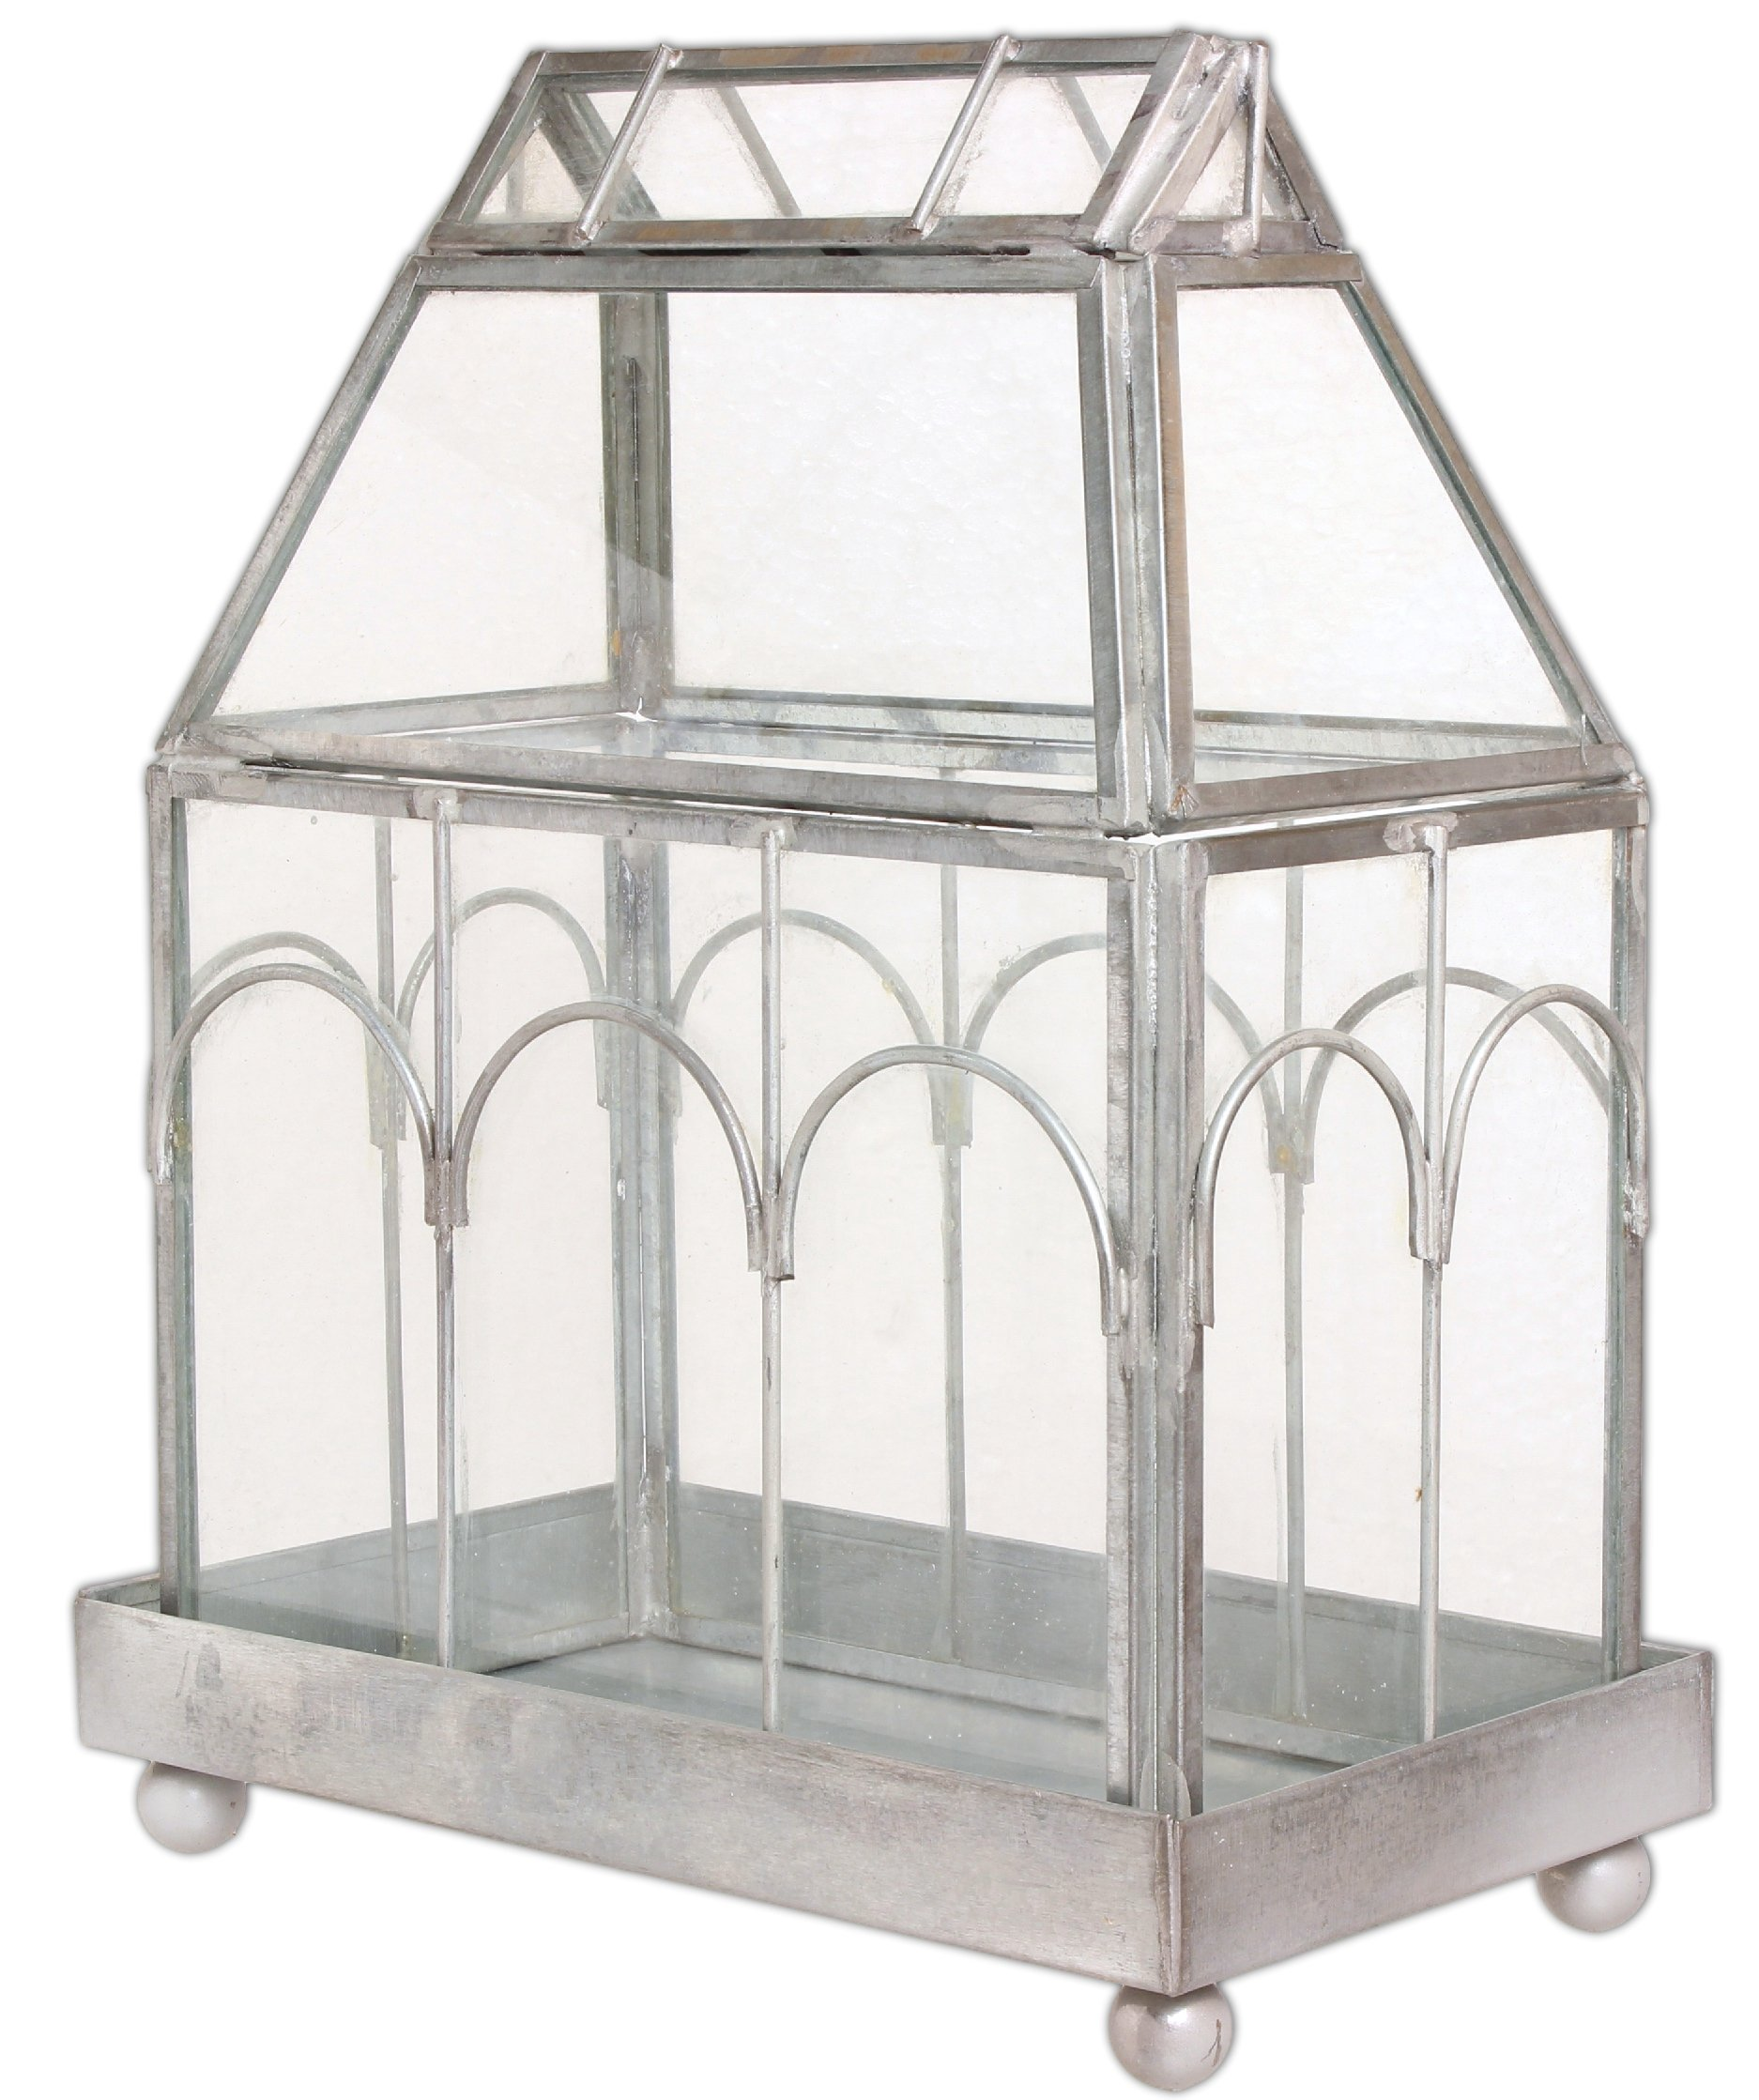 Archway Glass Terrarium by Colonial Tin Works